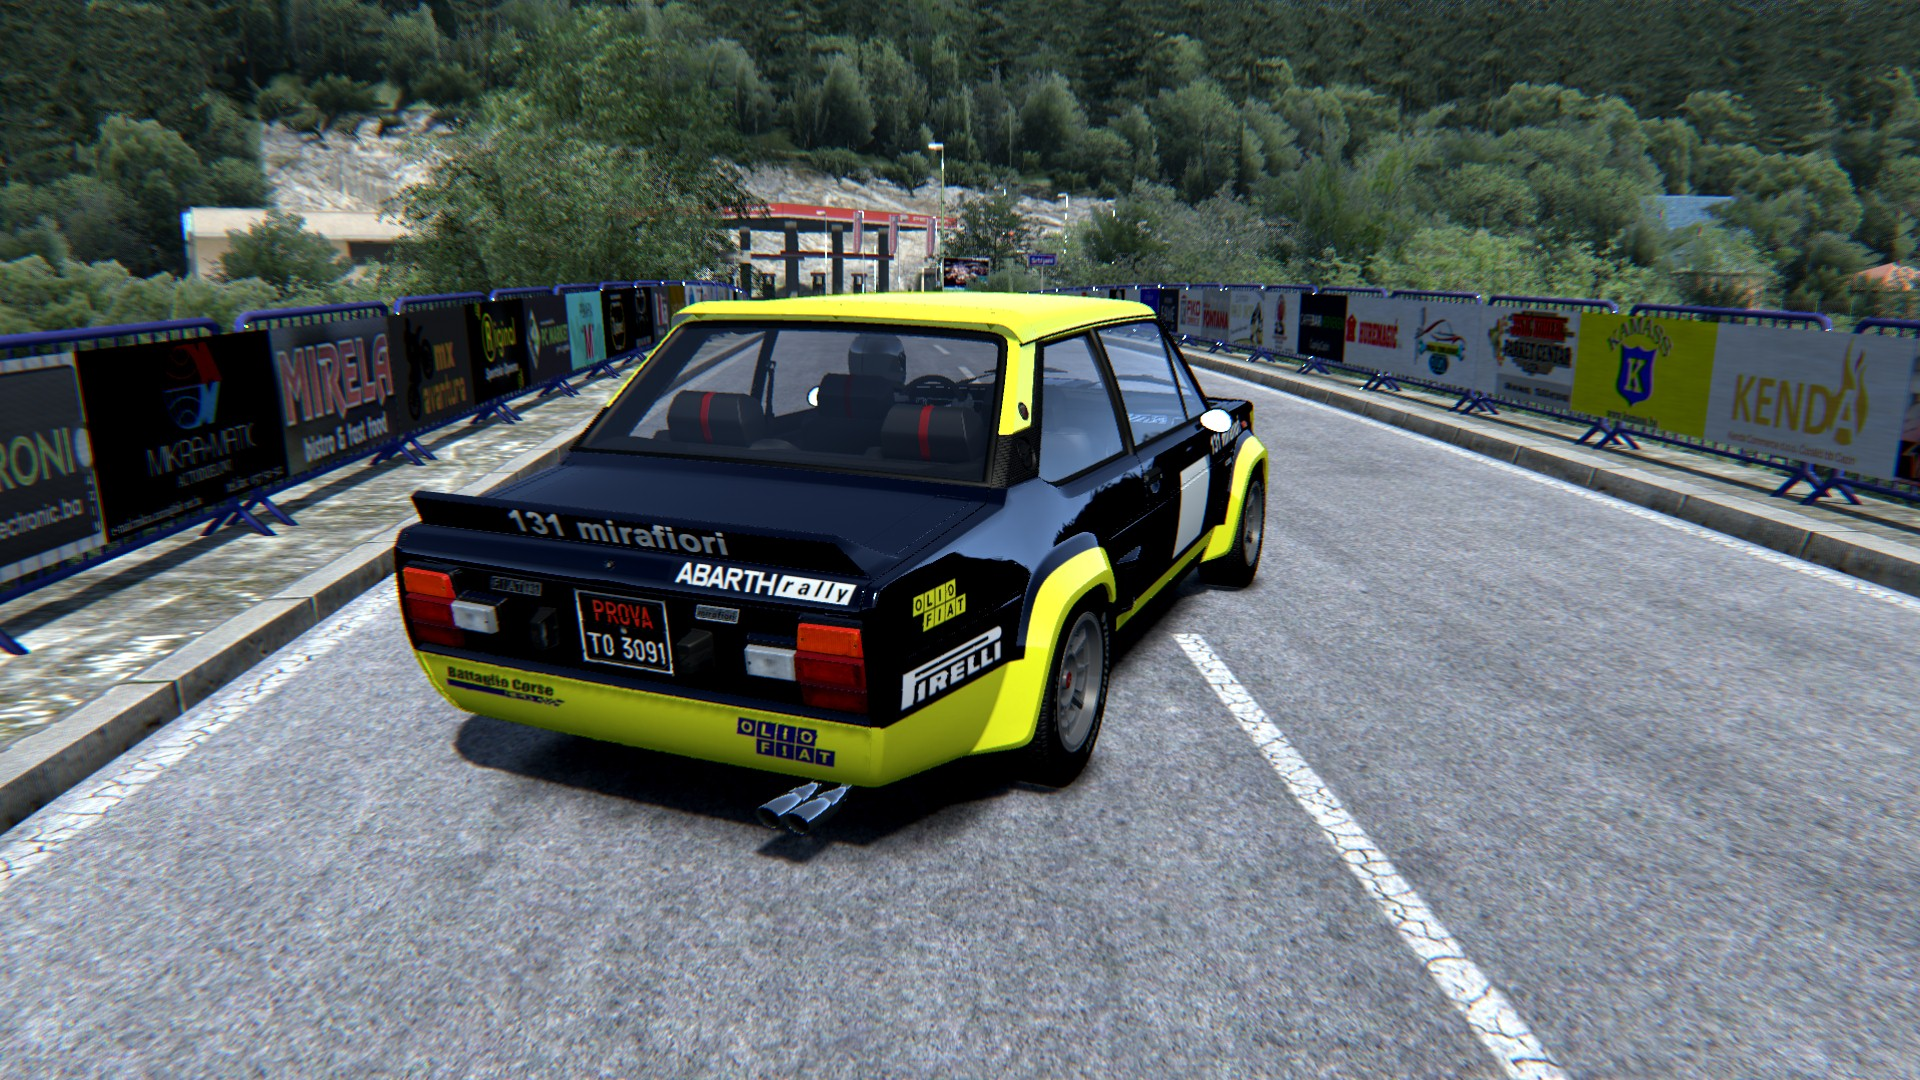 Screenshot_fiat_131_abarth_krajiskazmija_26-6-115-16-58-53.jpg